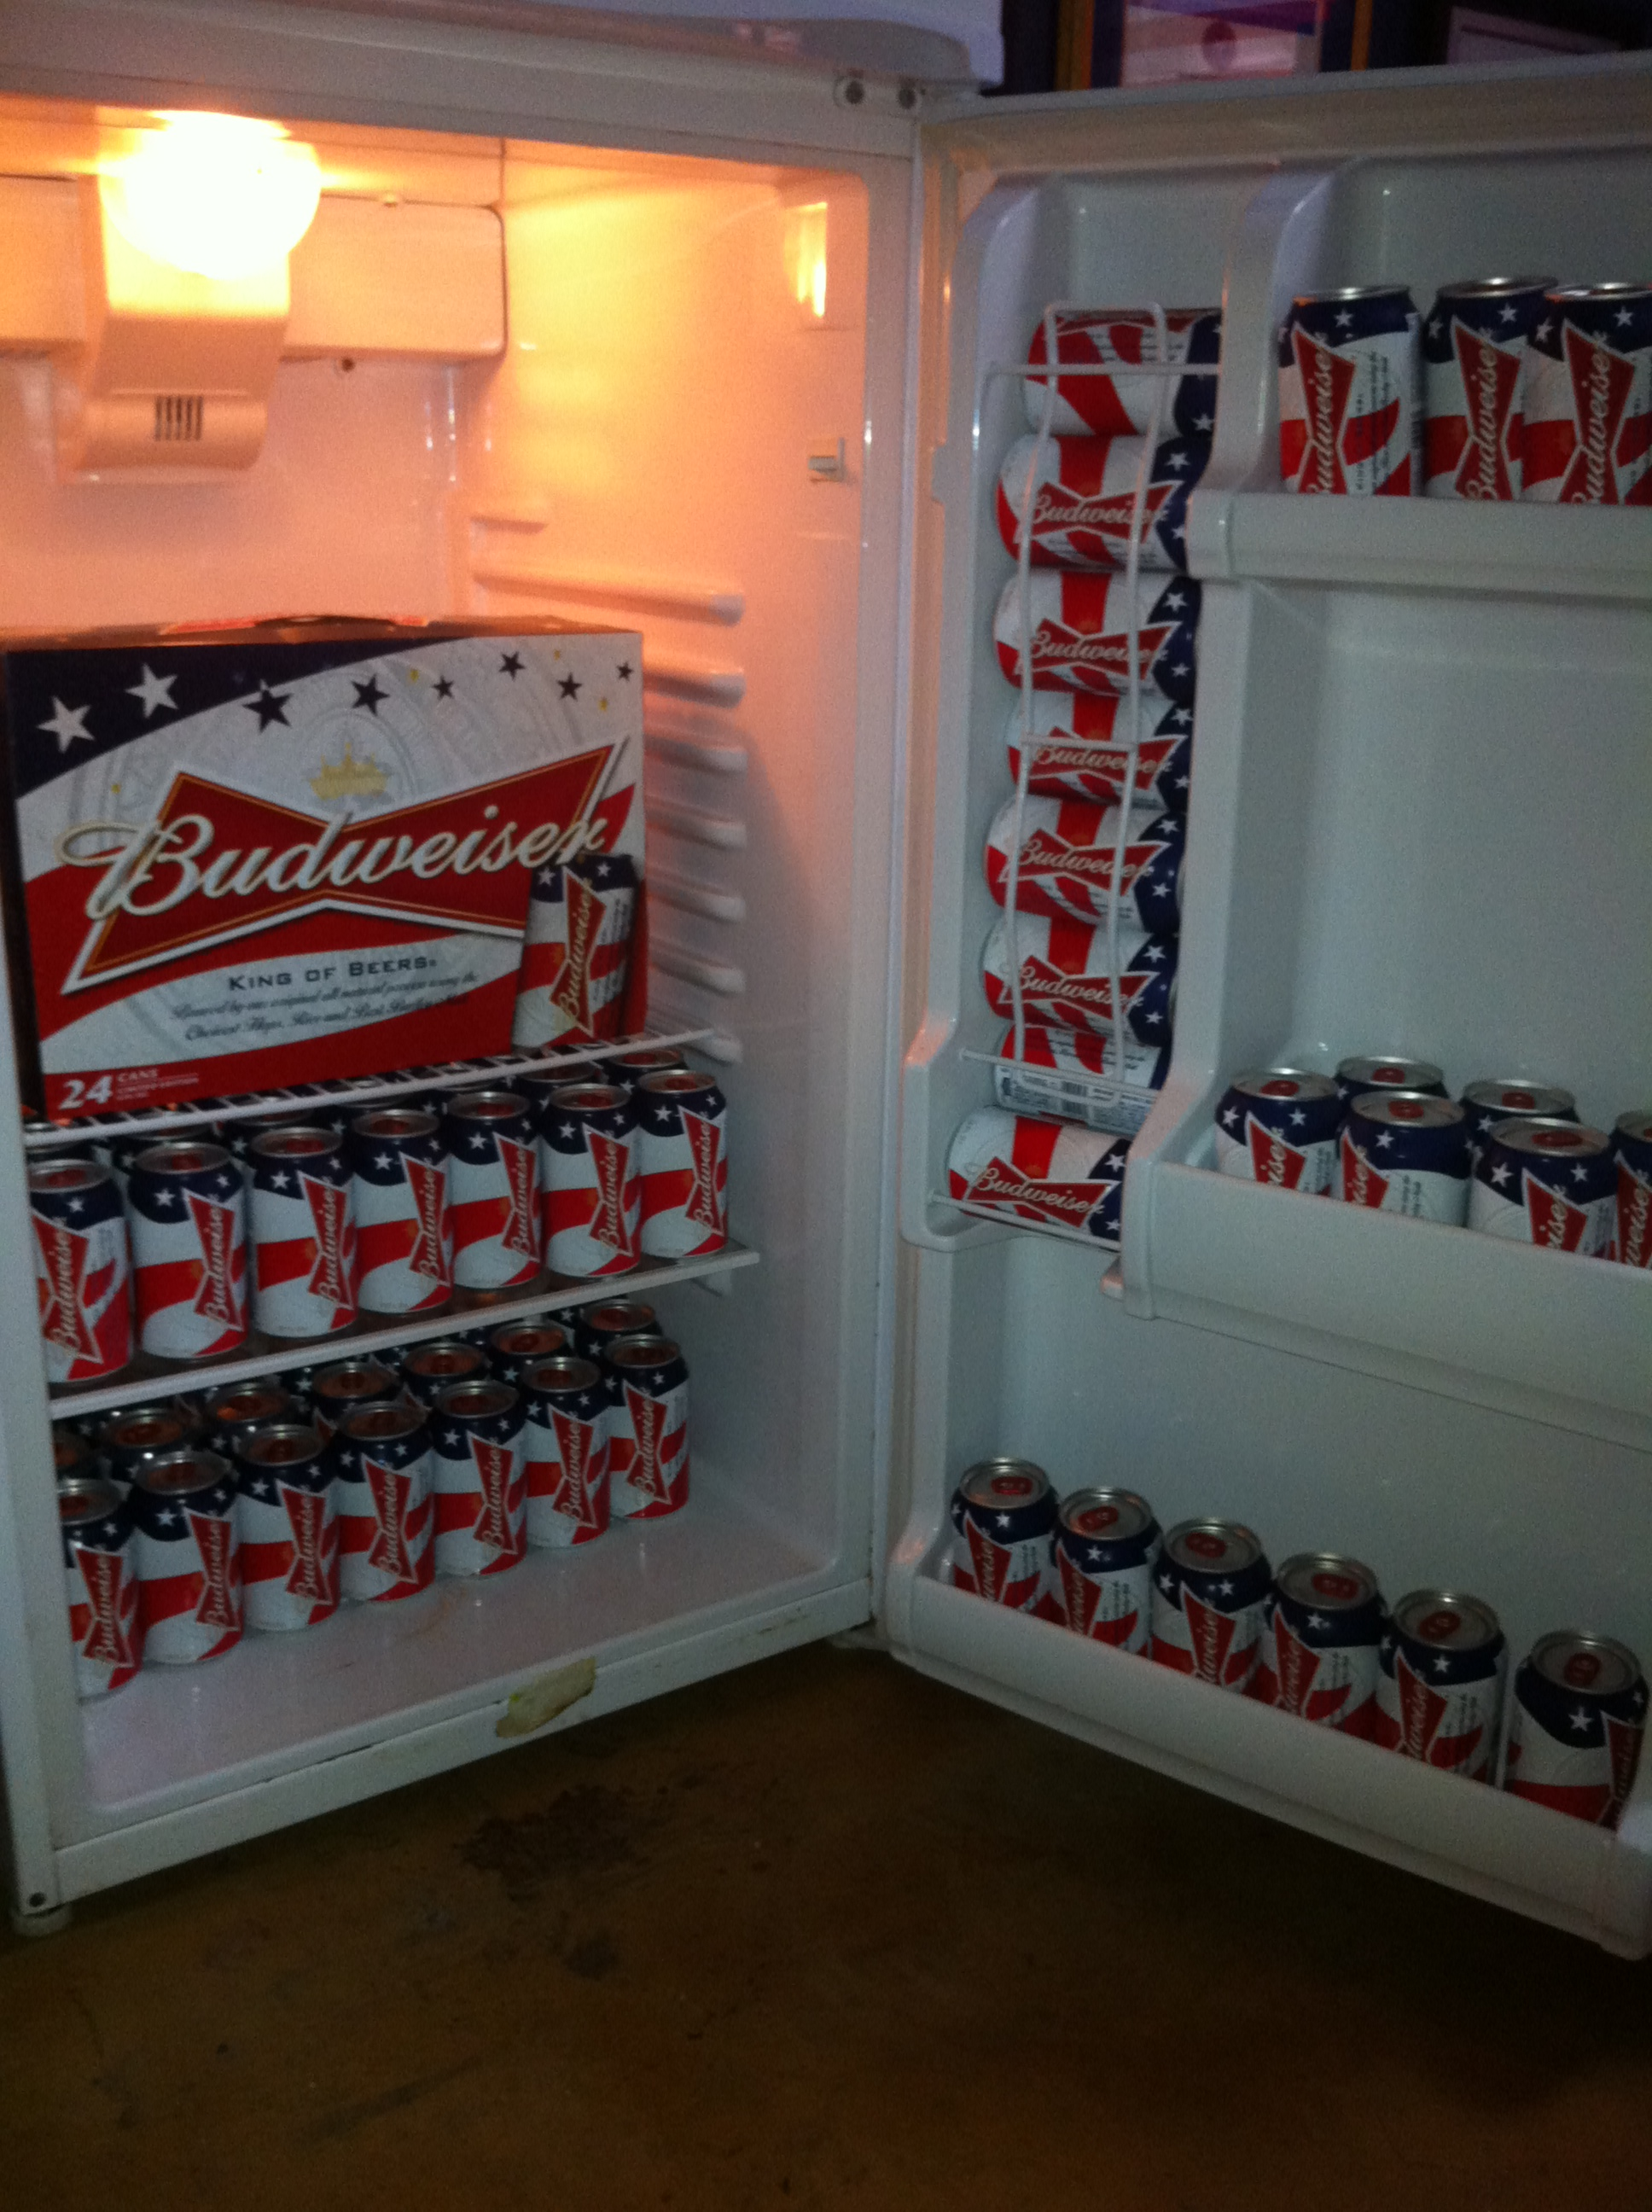 Had to get the fridge ready for D-Day. TFM.